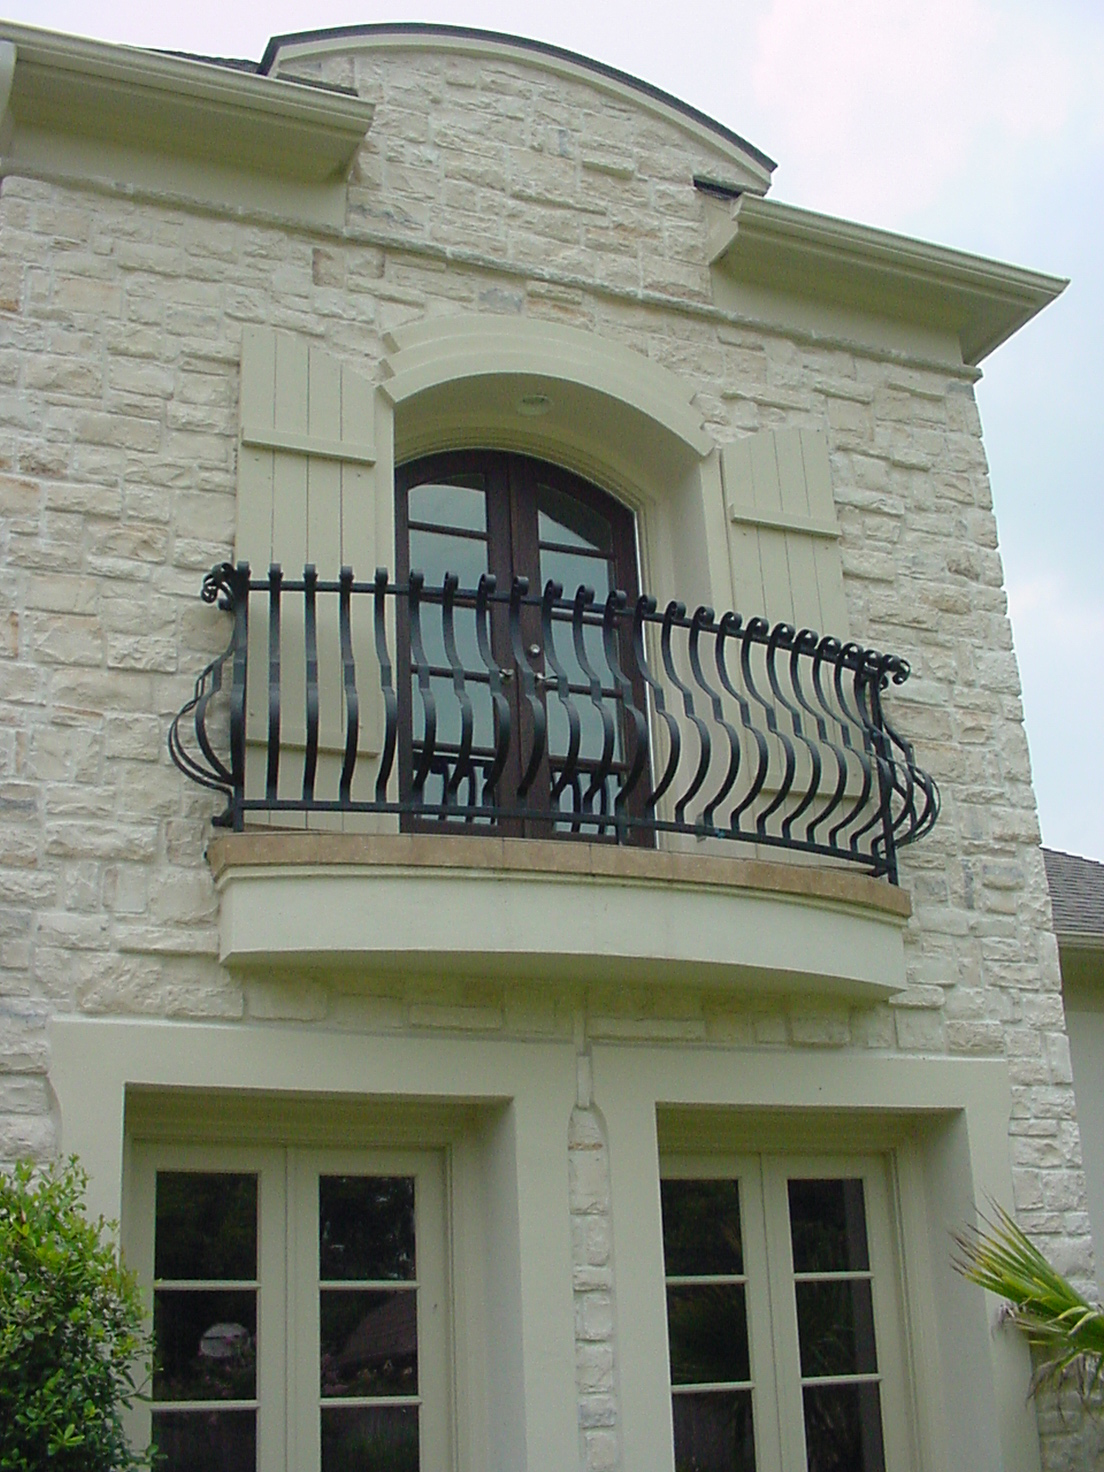 Juliet balconies growing in popularity for Balconies or balconies